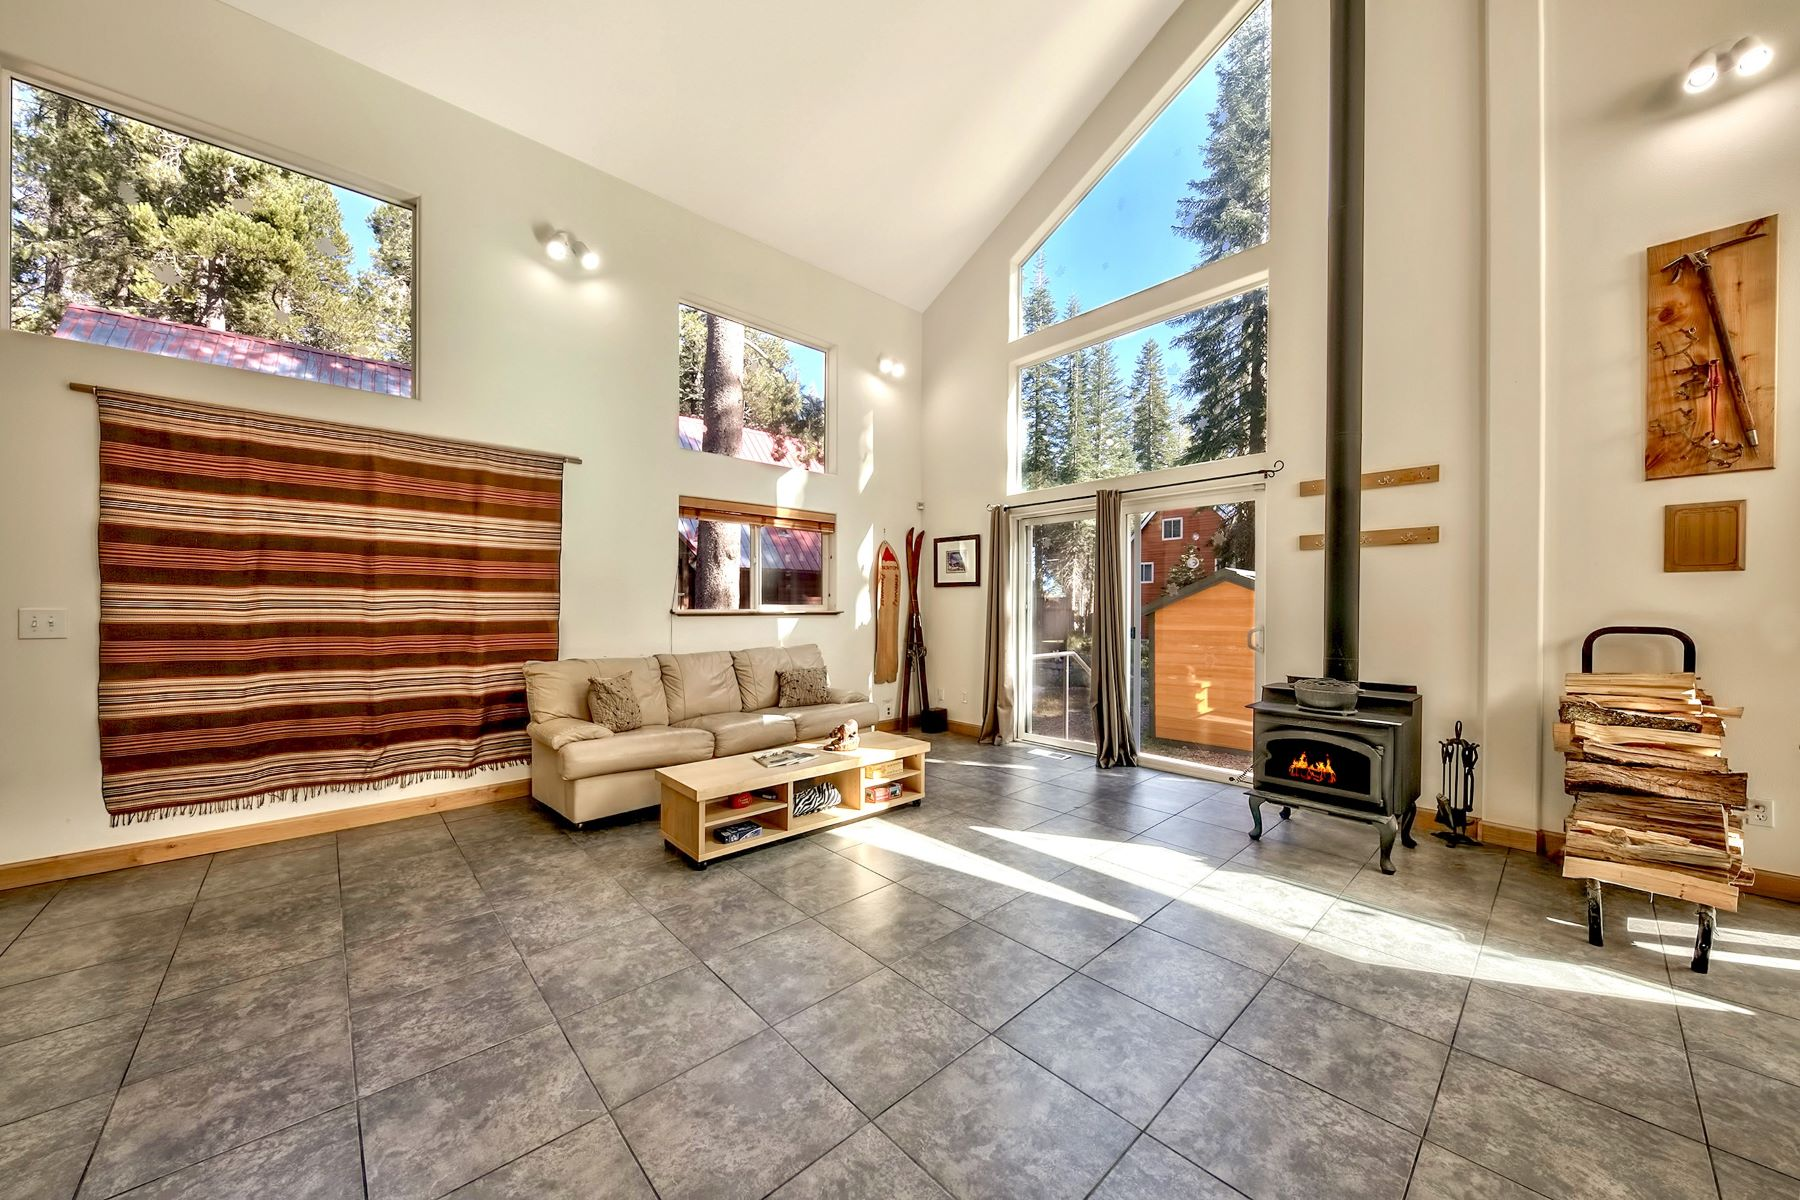 Additional photo for property listing at Tahoe's best recreation right out the front door. 7098 Sierra Pines Rd Twin Bridges, California 95735 United States